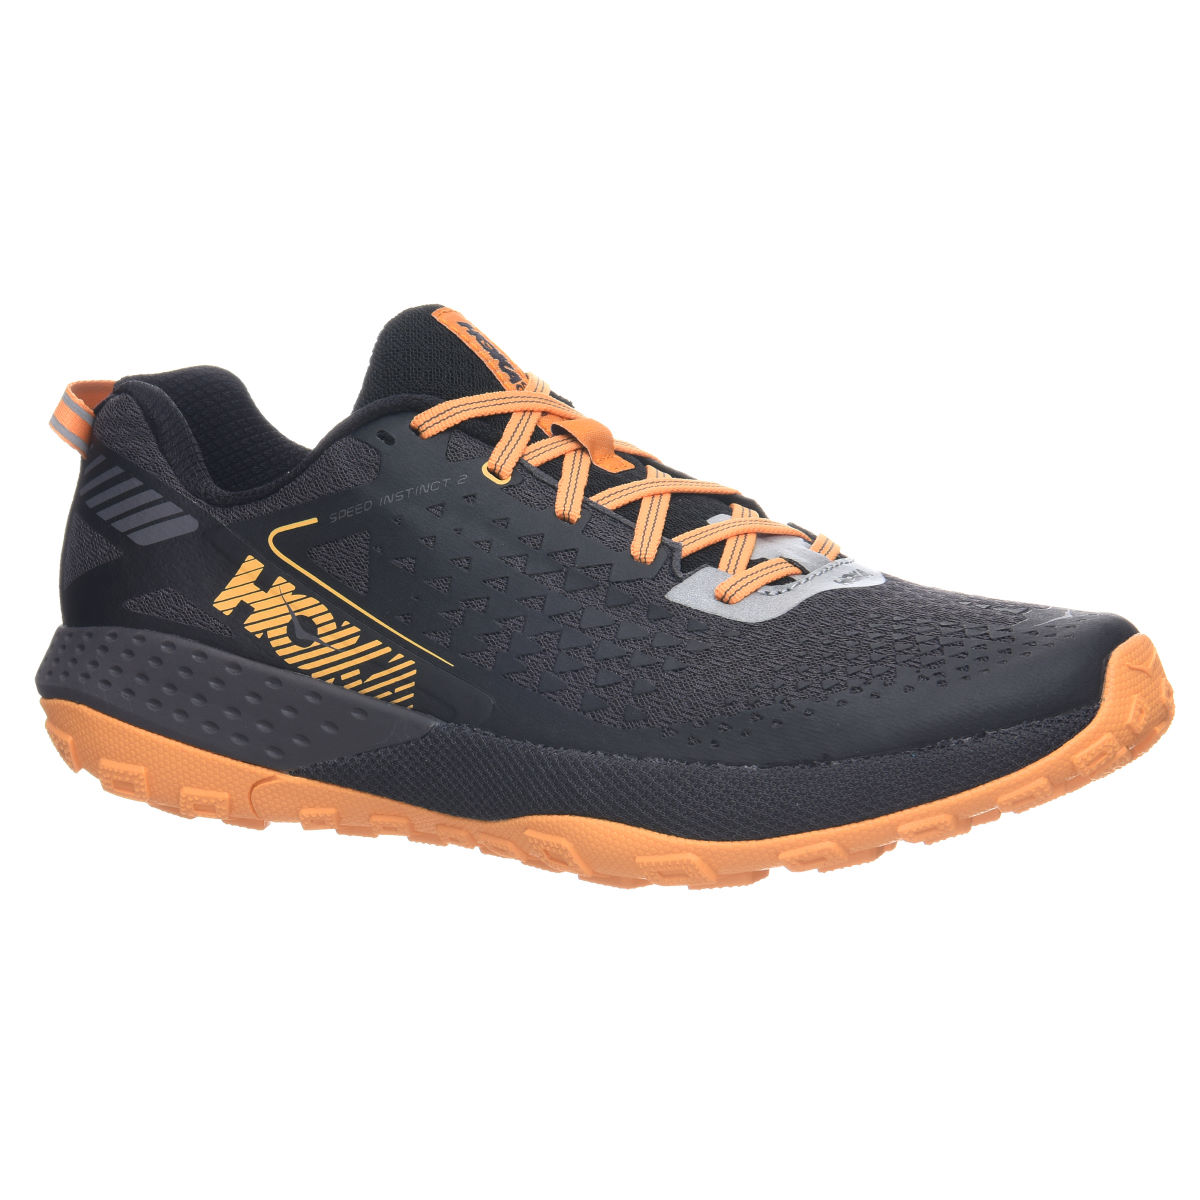 Chaussures Hoka One One Speed Instinct 2 - UK 11 Black/Kumquat